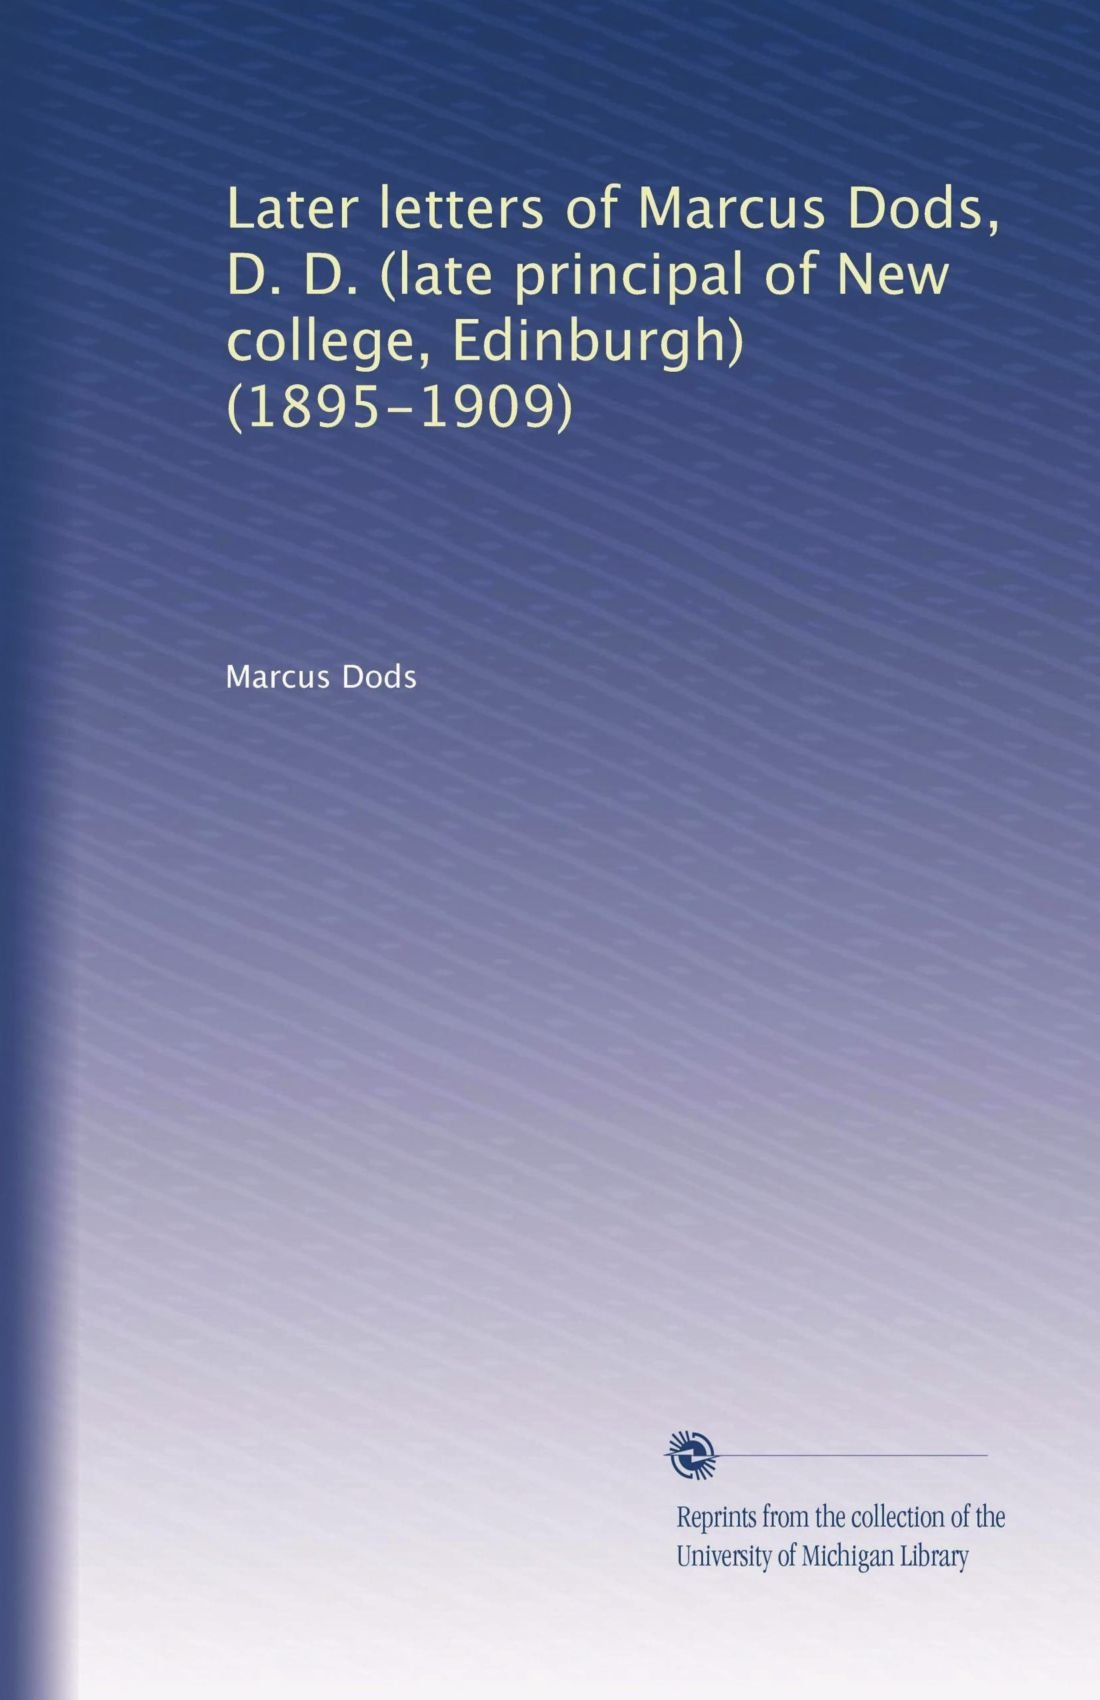 Download Later letters of Marcus Dods, D. D. (late principal of New college, Edinburgh) (1895-1909) pdf epub